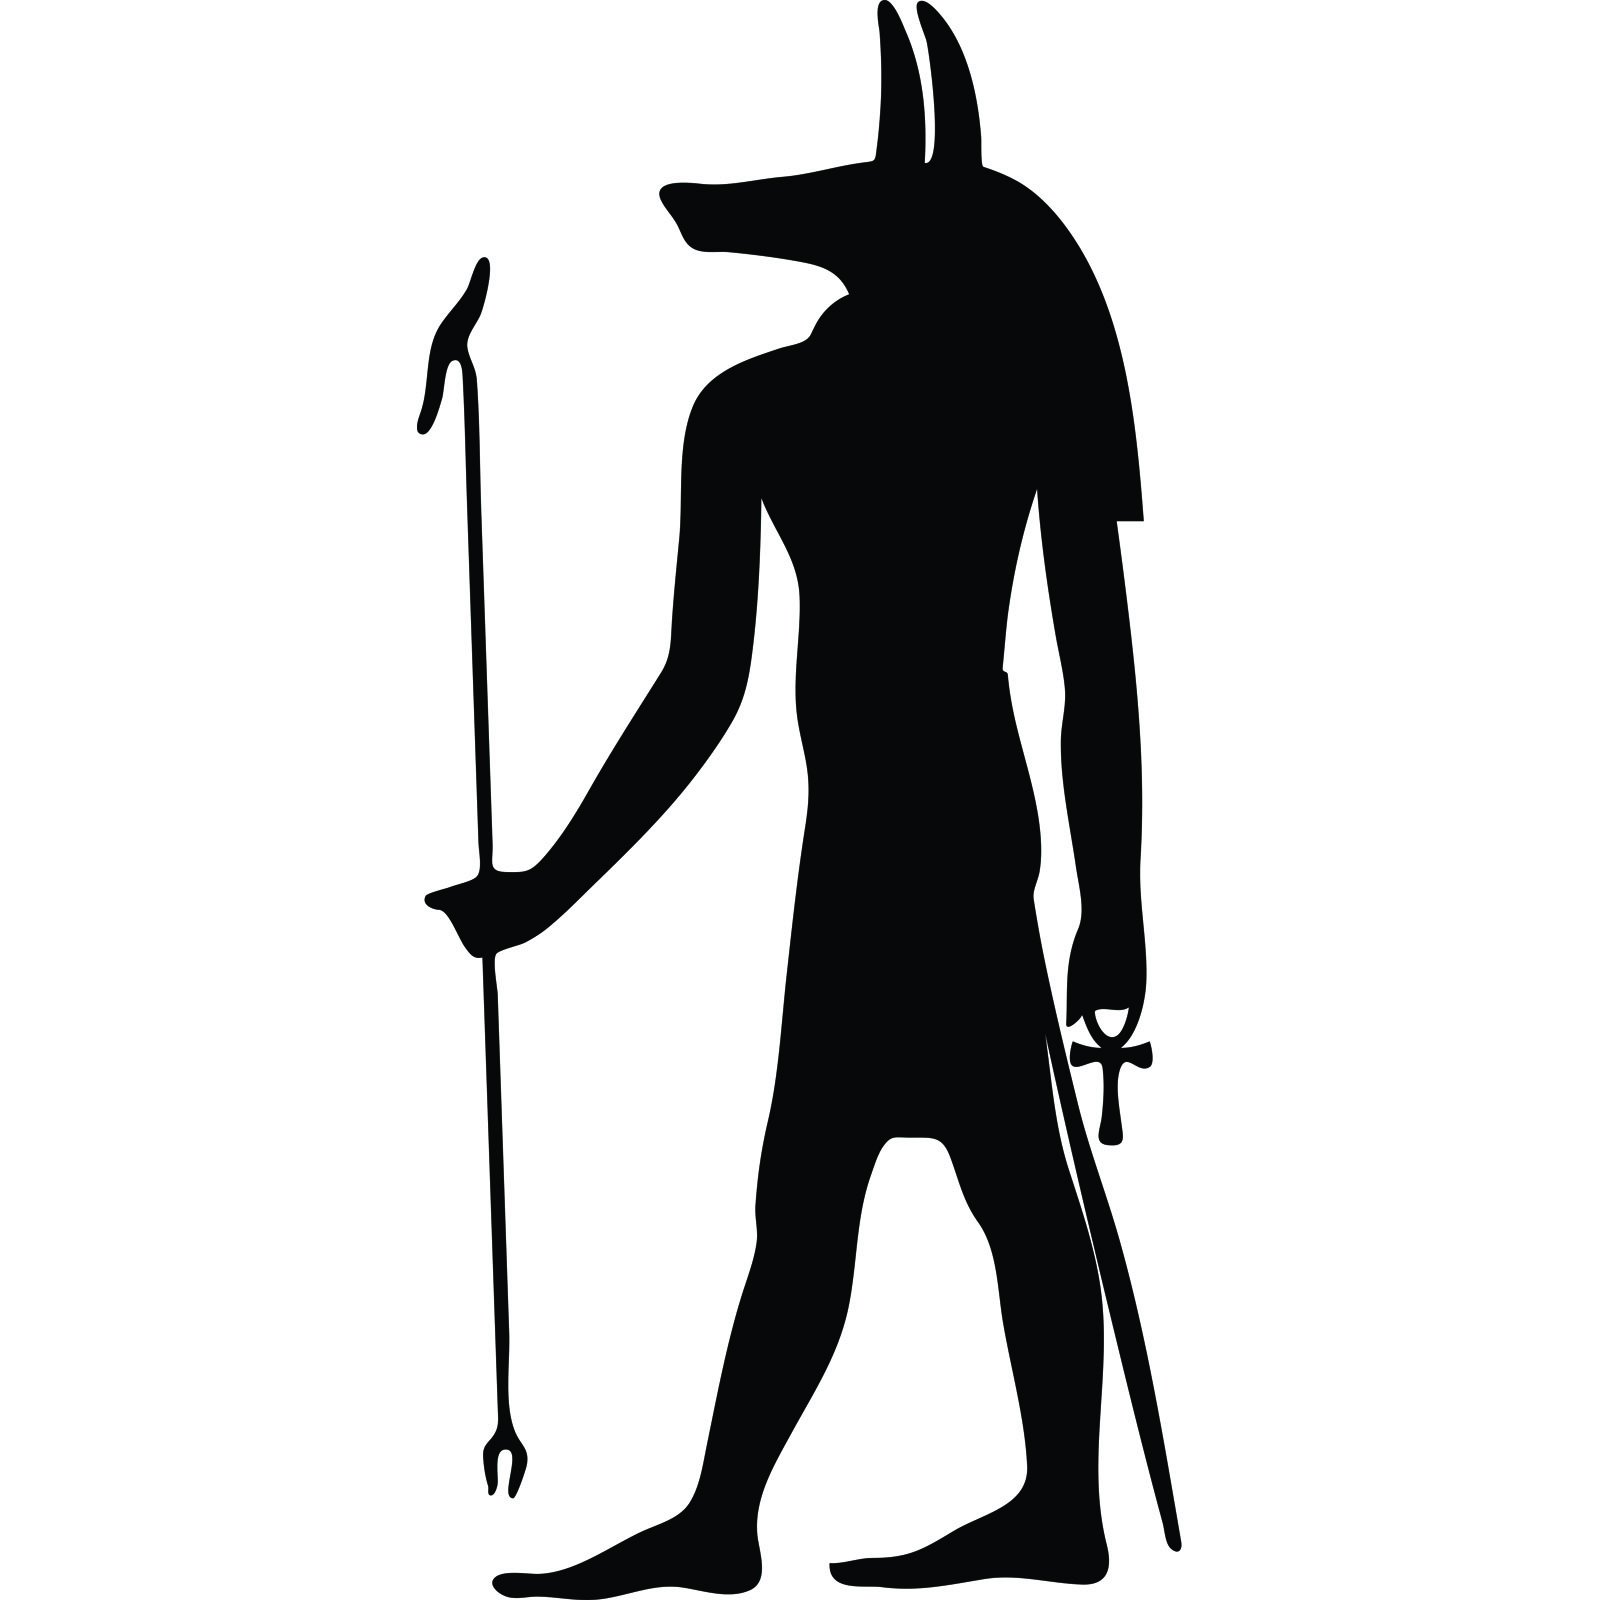 anubis egyptian wall sticker world of wall stickers clip art of birthday cakes black and white clip art of birthday cake with 9 candles